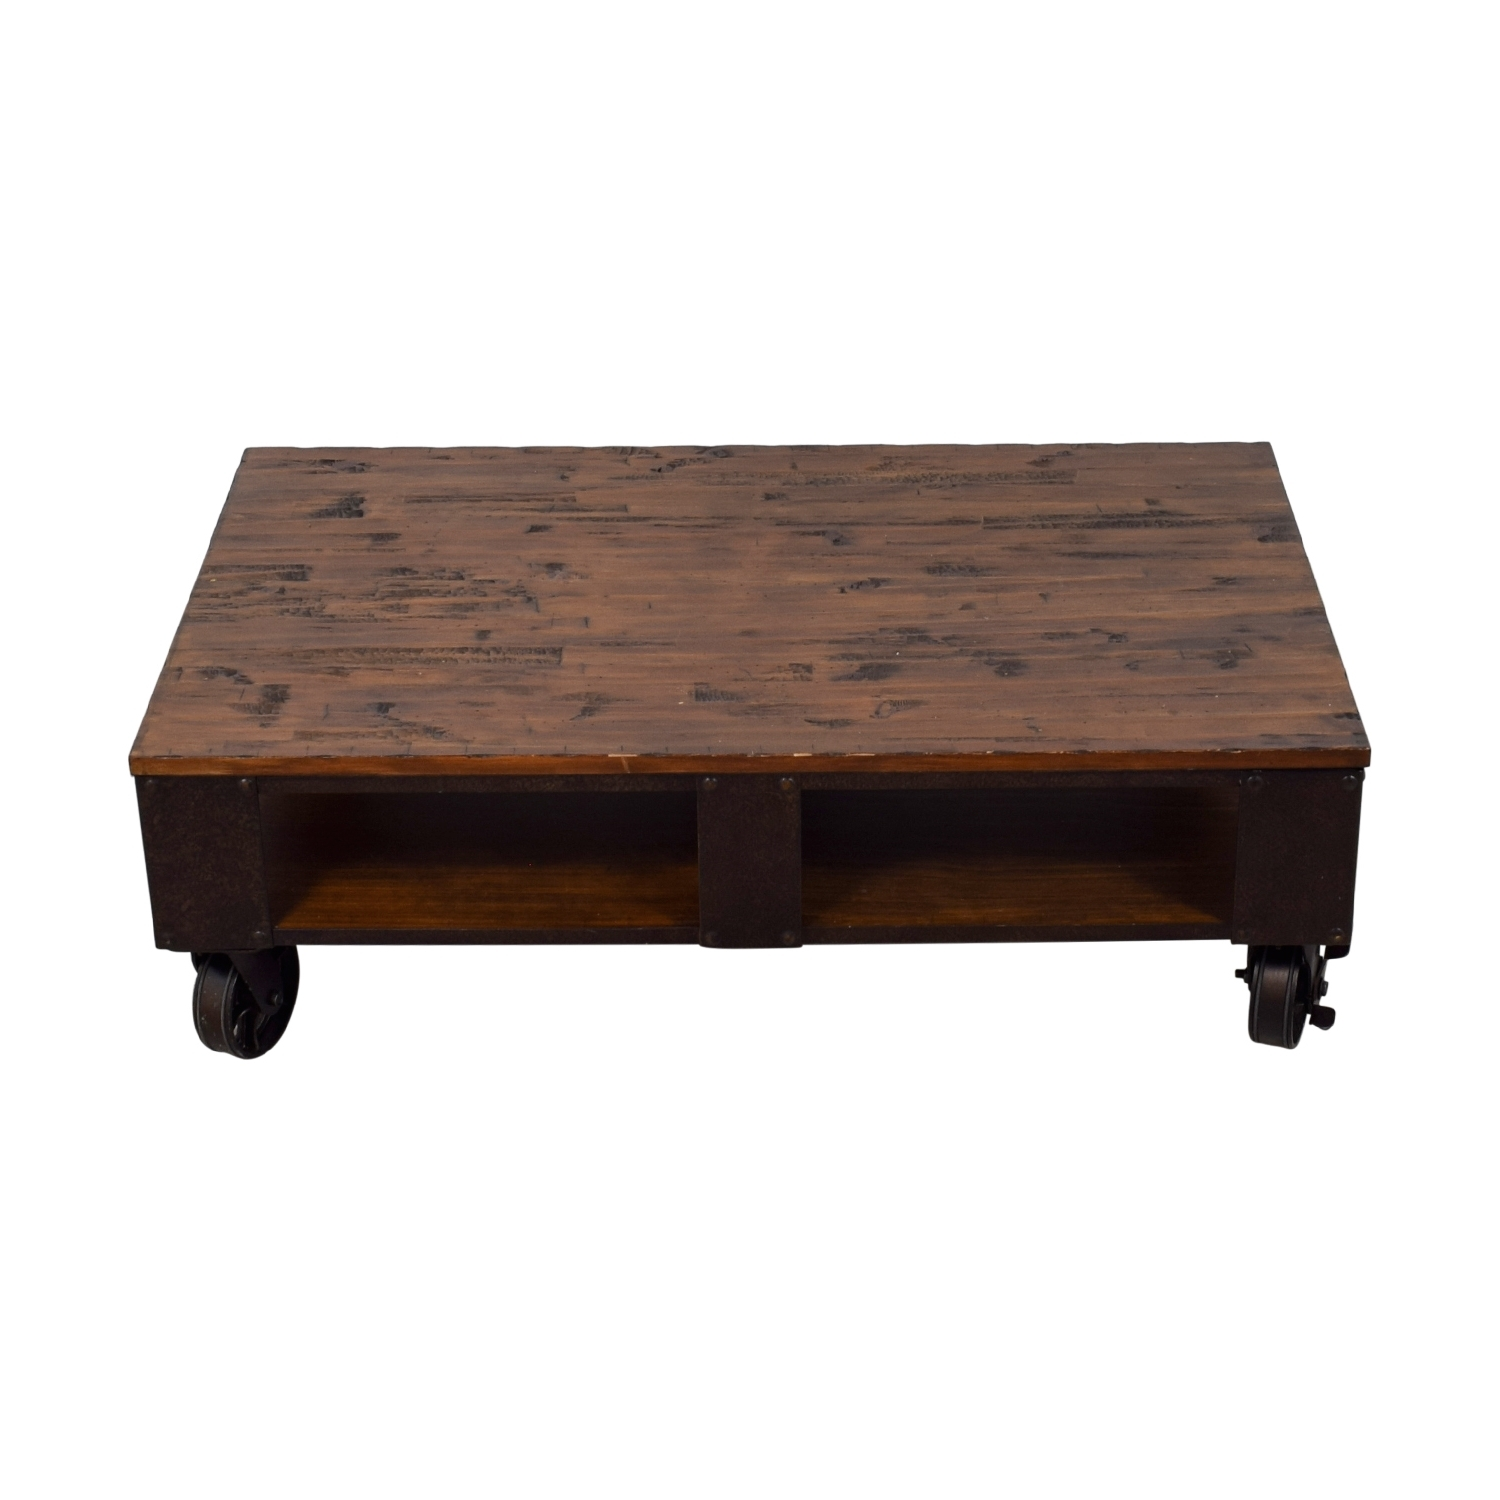 [%trendy Natural Pine Coffee Tables Throughout 59% Off – Magnussen Magnussen T1755 Pinebrook Distressed Natural|59% Off – Magnussen Magnussen T1755 Pinebrook Distressed Natural In Most Popular Natural Pine Coffee Tables%] (View 20 of 20)